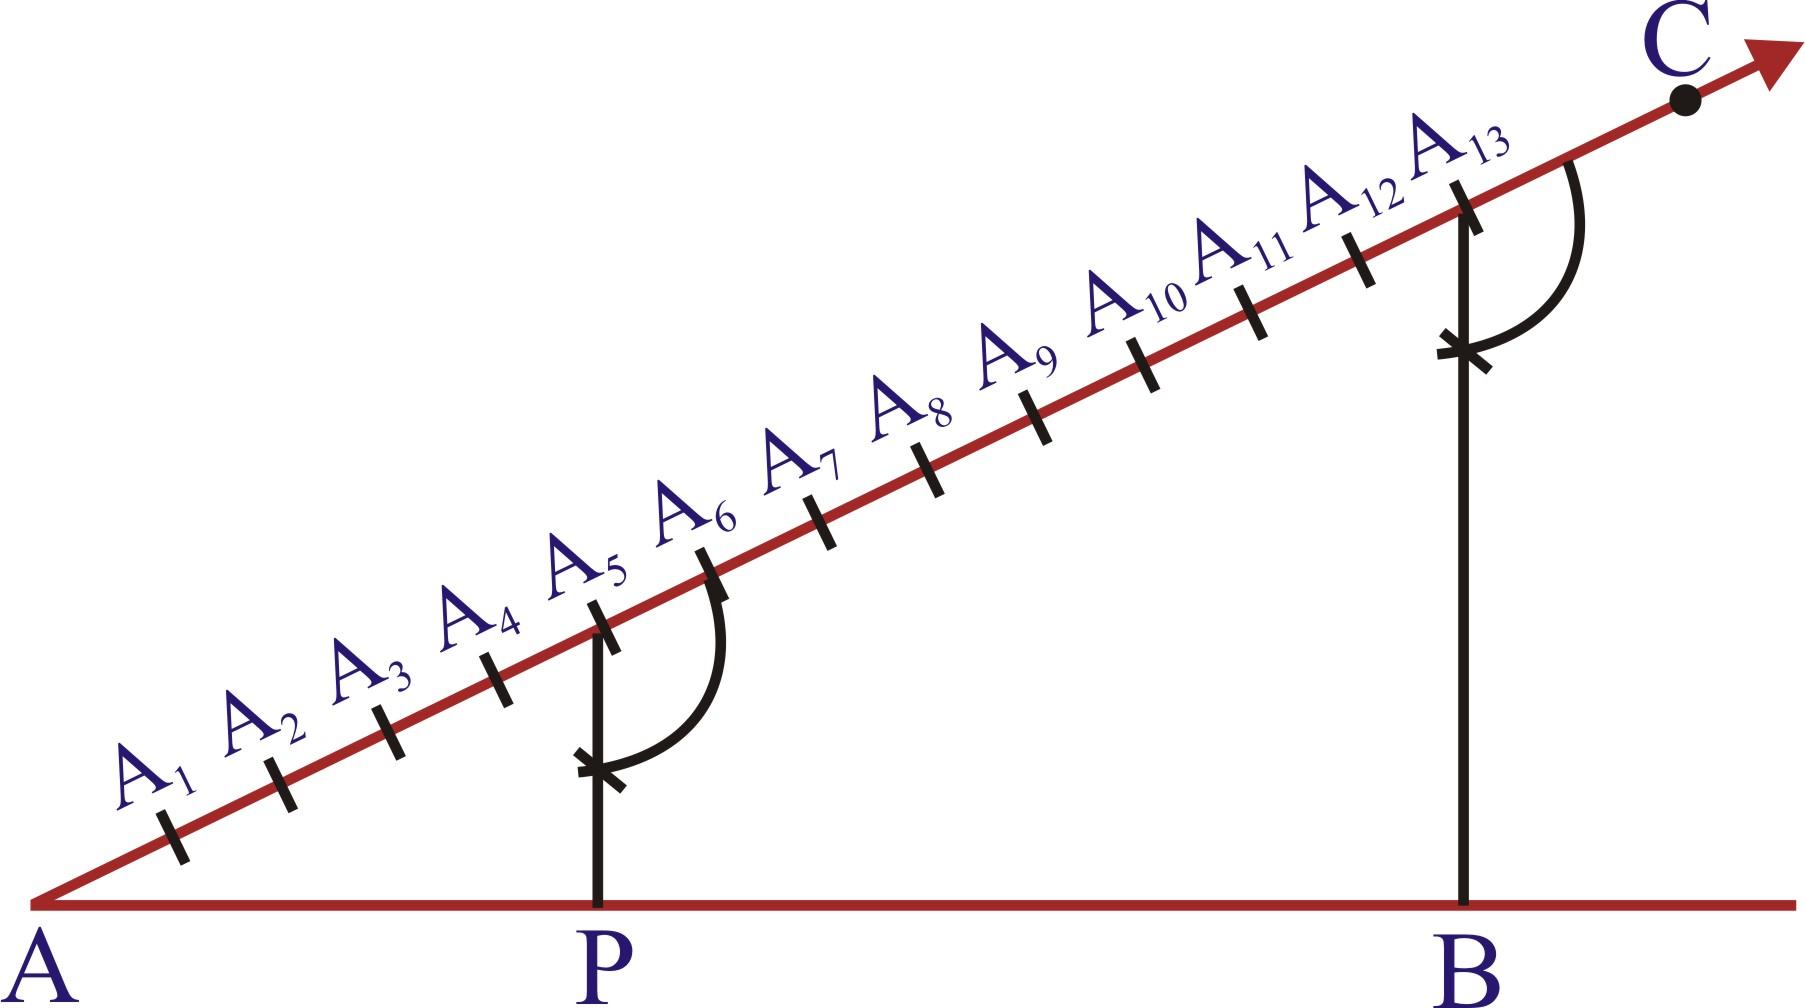 Division Of A Line Segment Into A Given Ratio